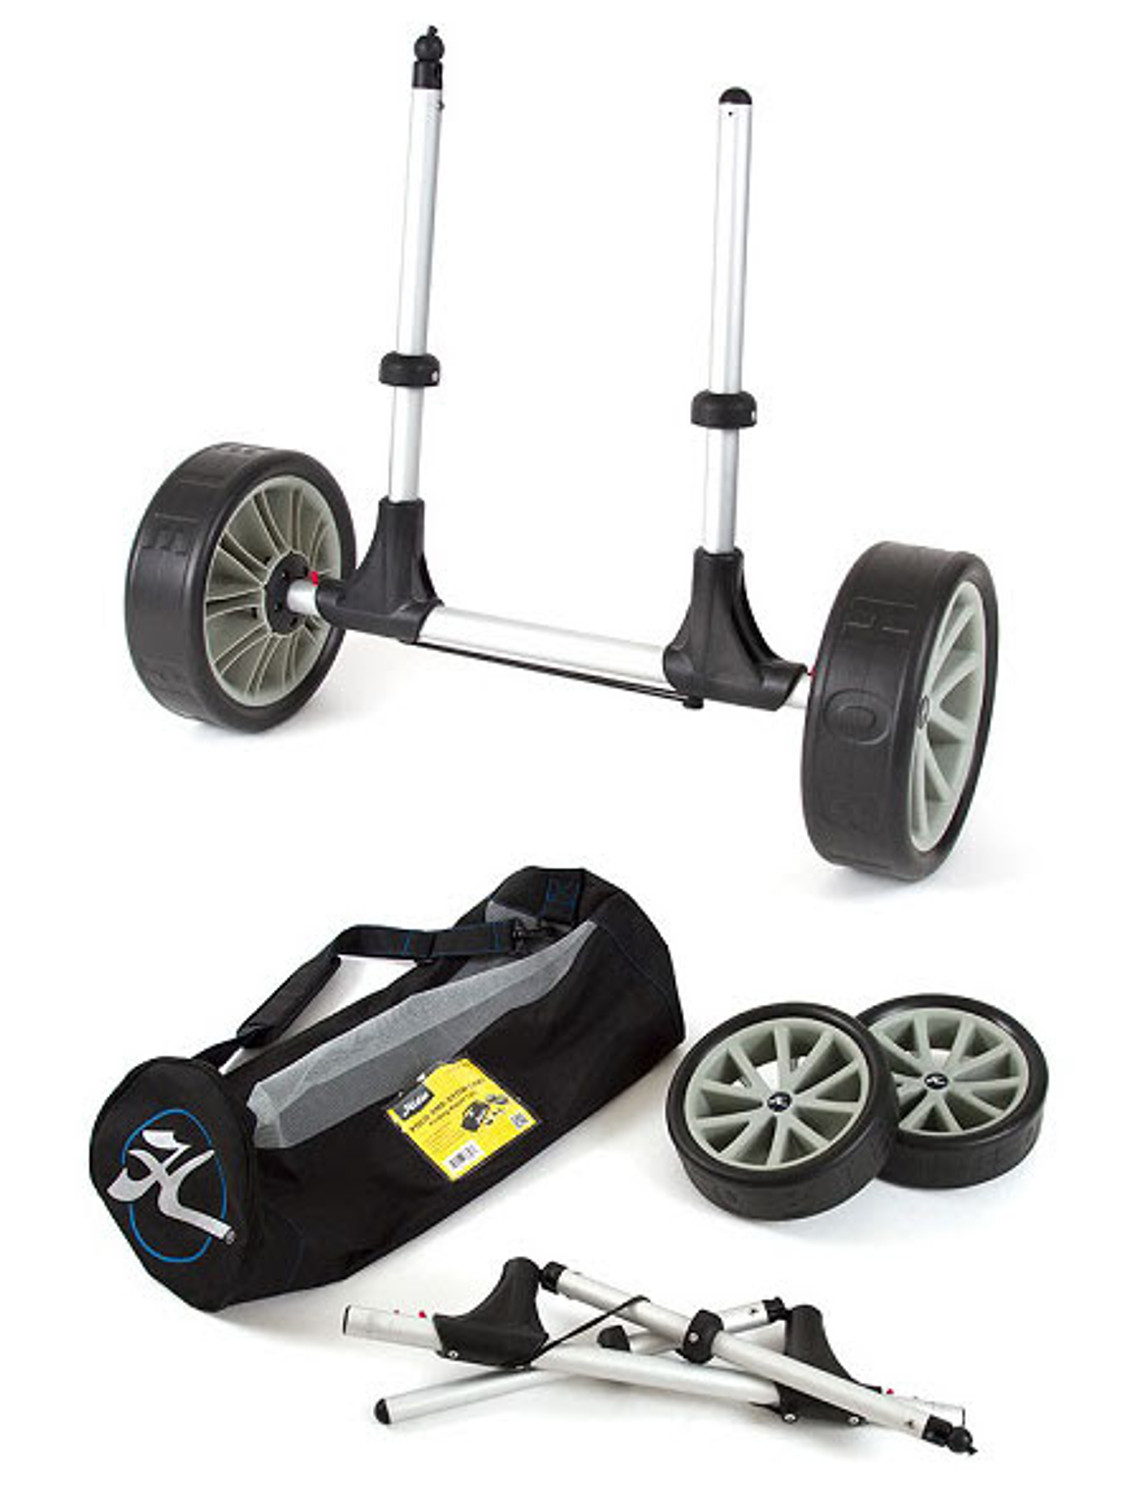 Hobie Fold and Stow Plug-In Cart